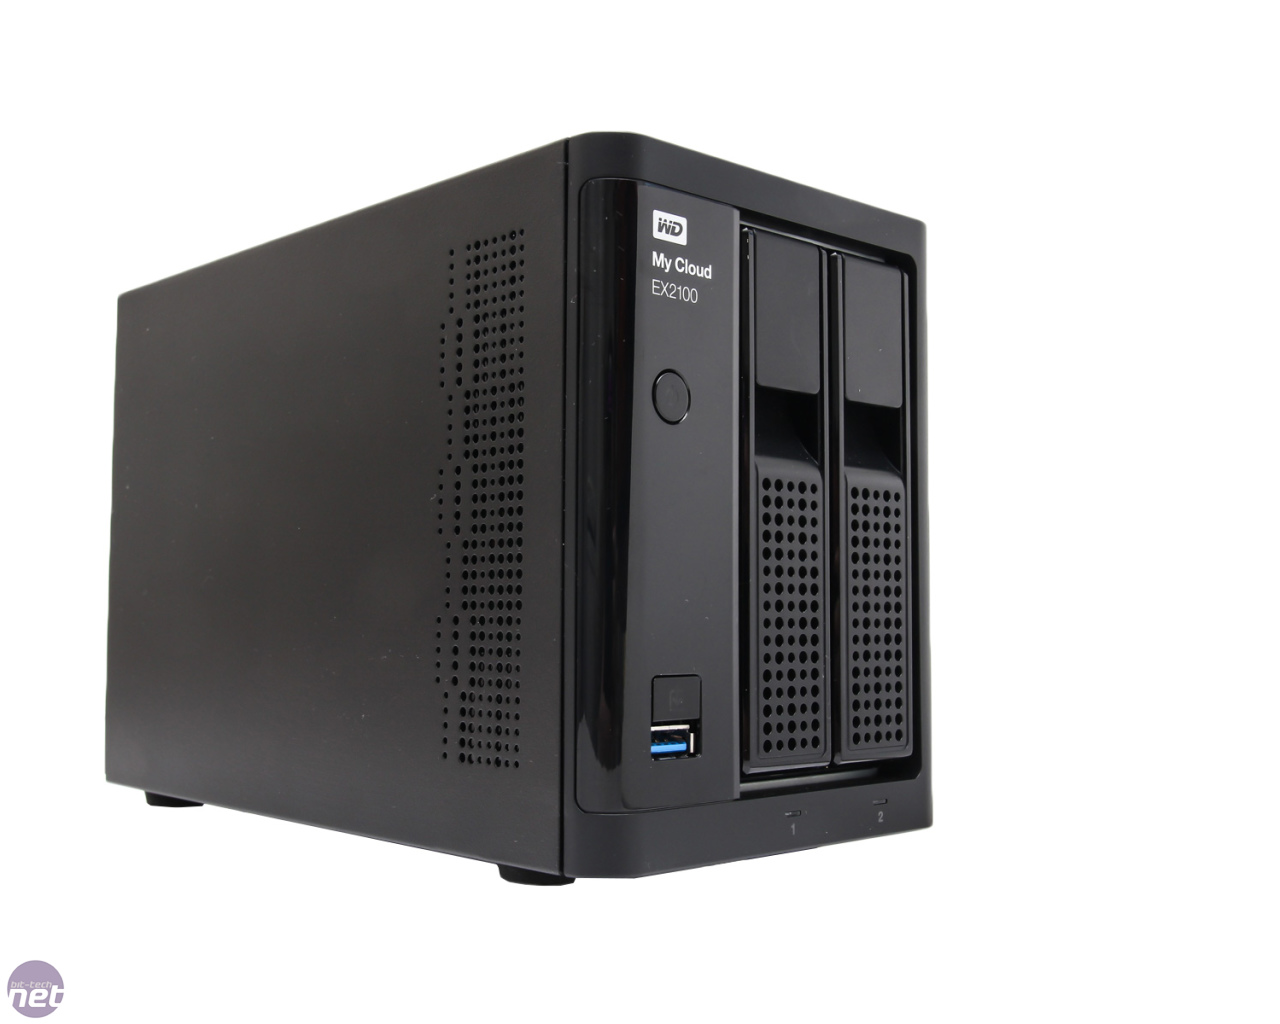 WD My Cloud EX2100 Review | bit-tech net